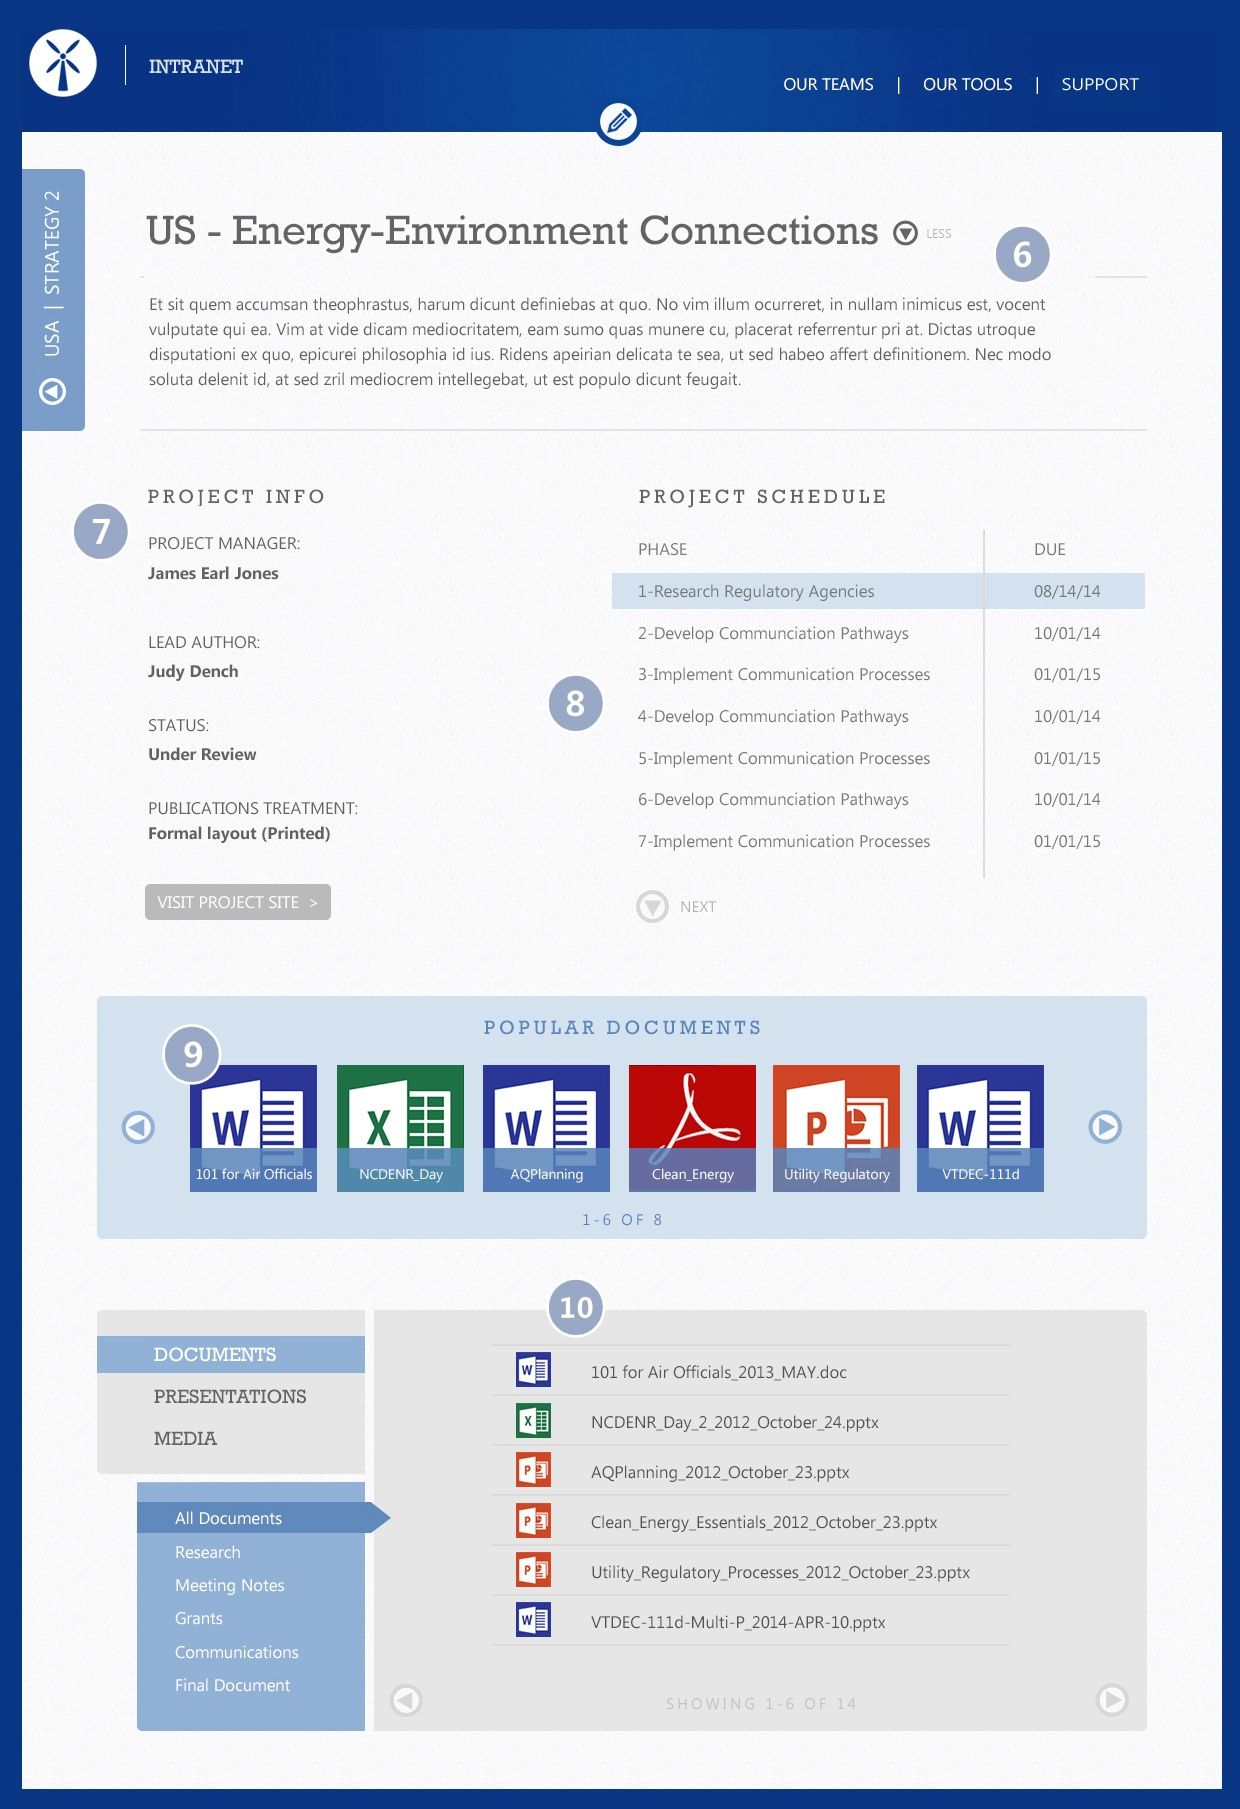 Sharepoint site design ideas - Explore These Ideas And More